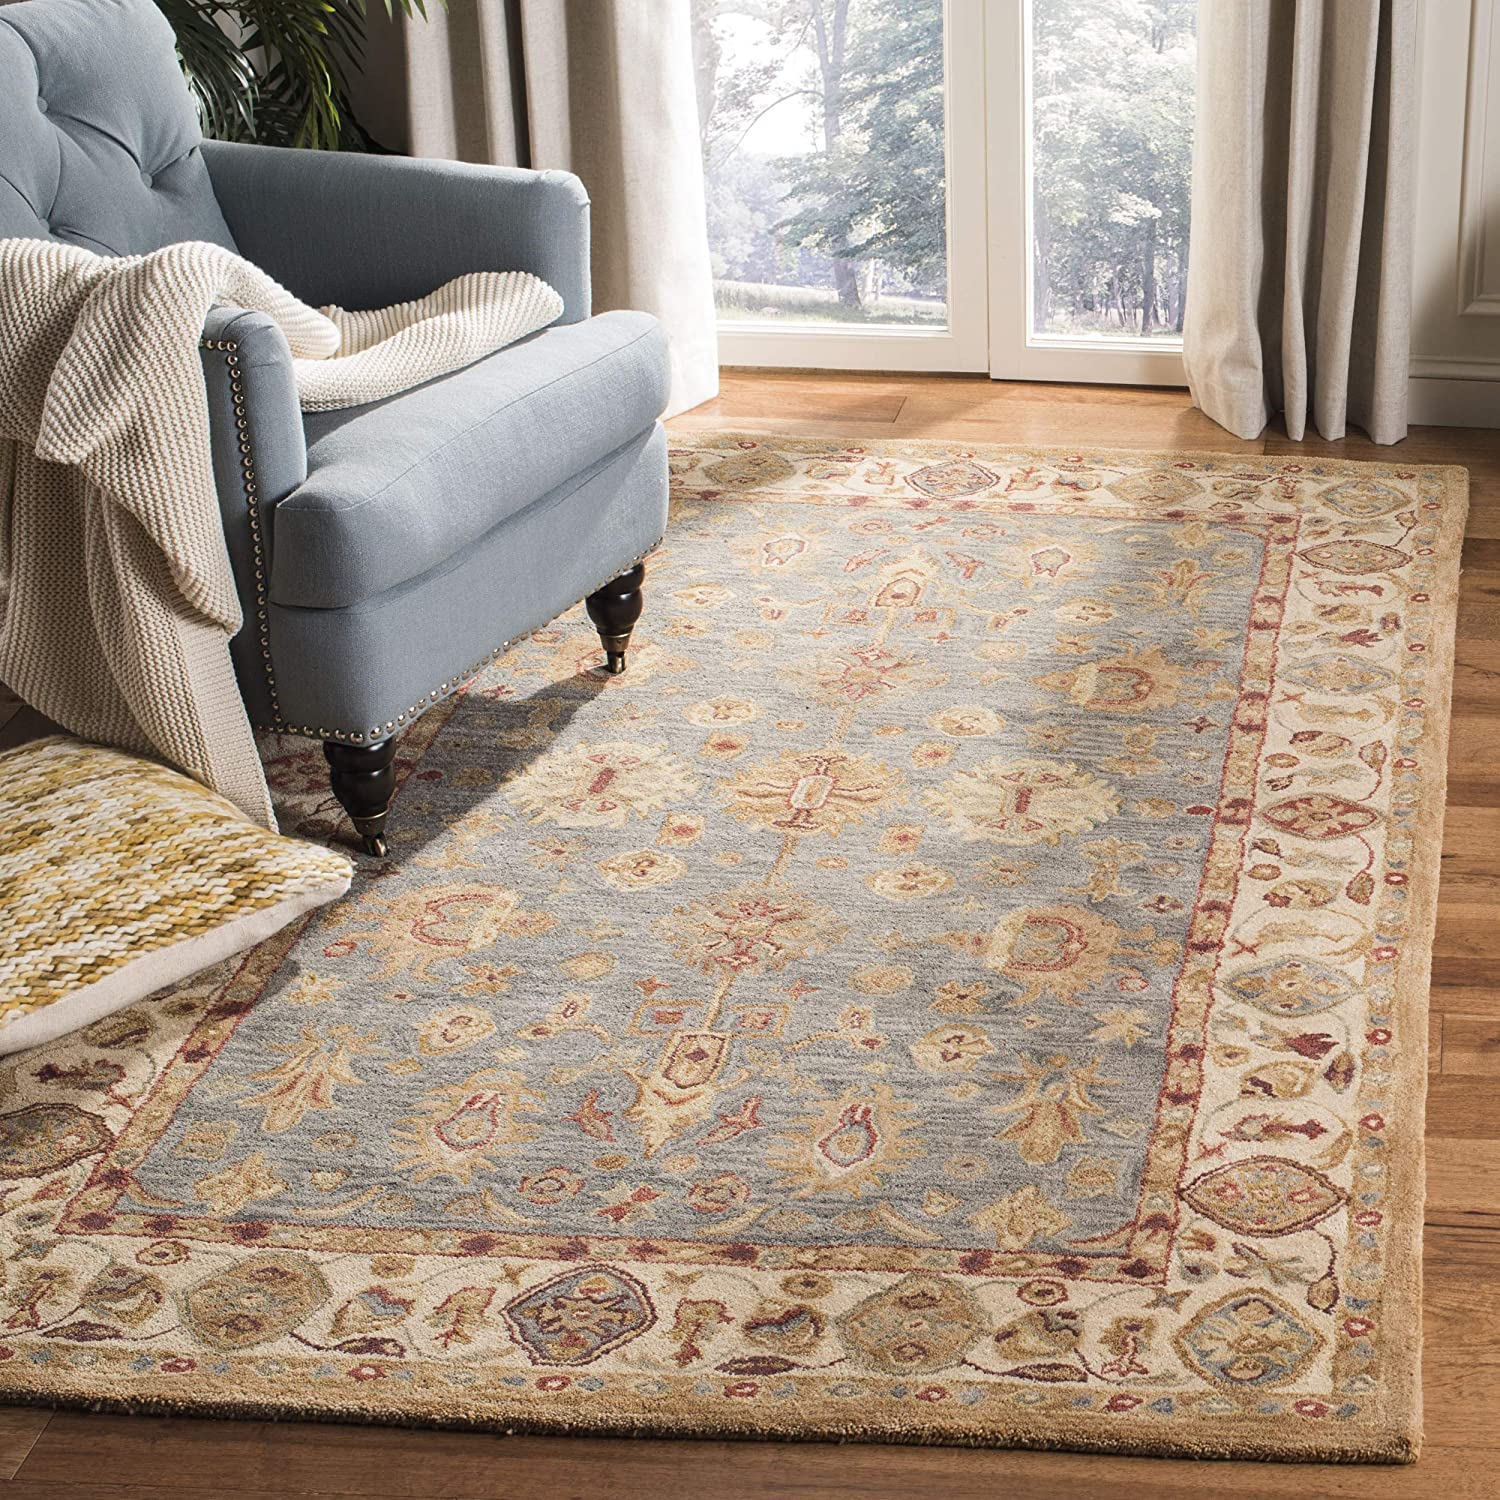 Safavieh Anatolia Collection AN547A Handmade Traditional Oriental Blue and Ivory Wool Area Rug (6' x 9')